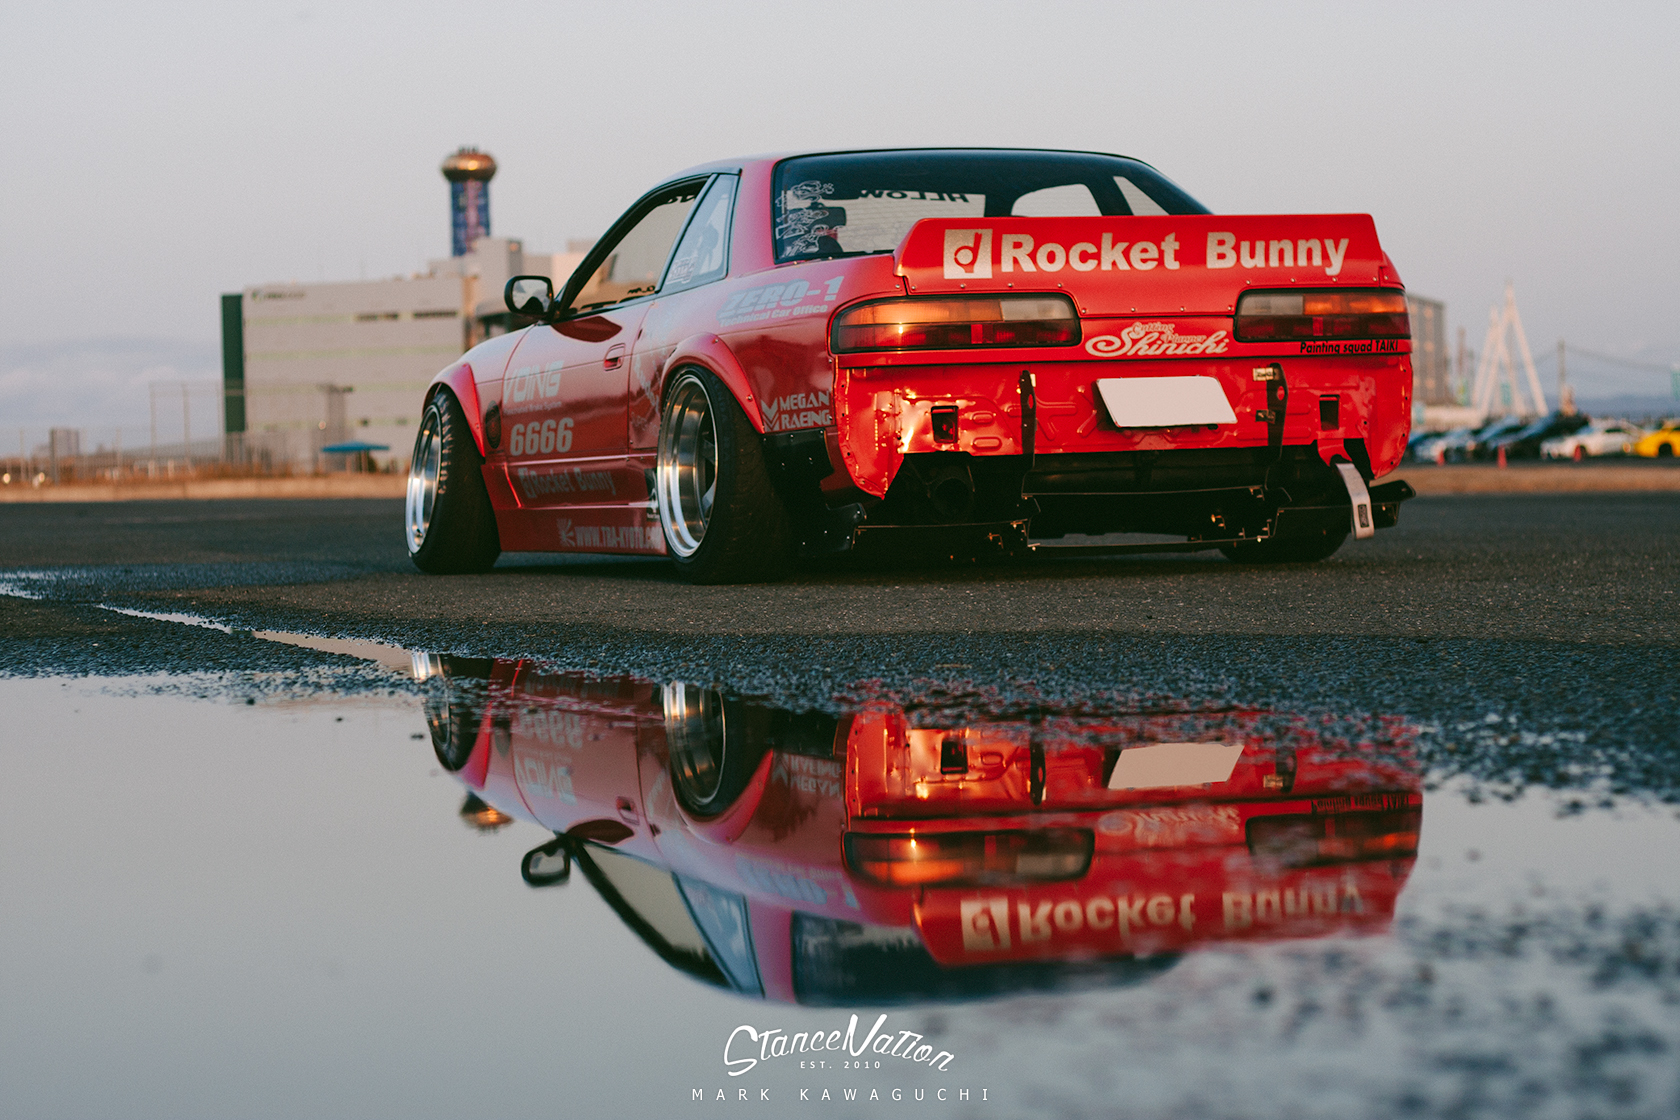 rocket-bunny-nissan-japan-6666-customs-S13-6